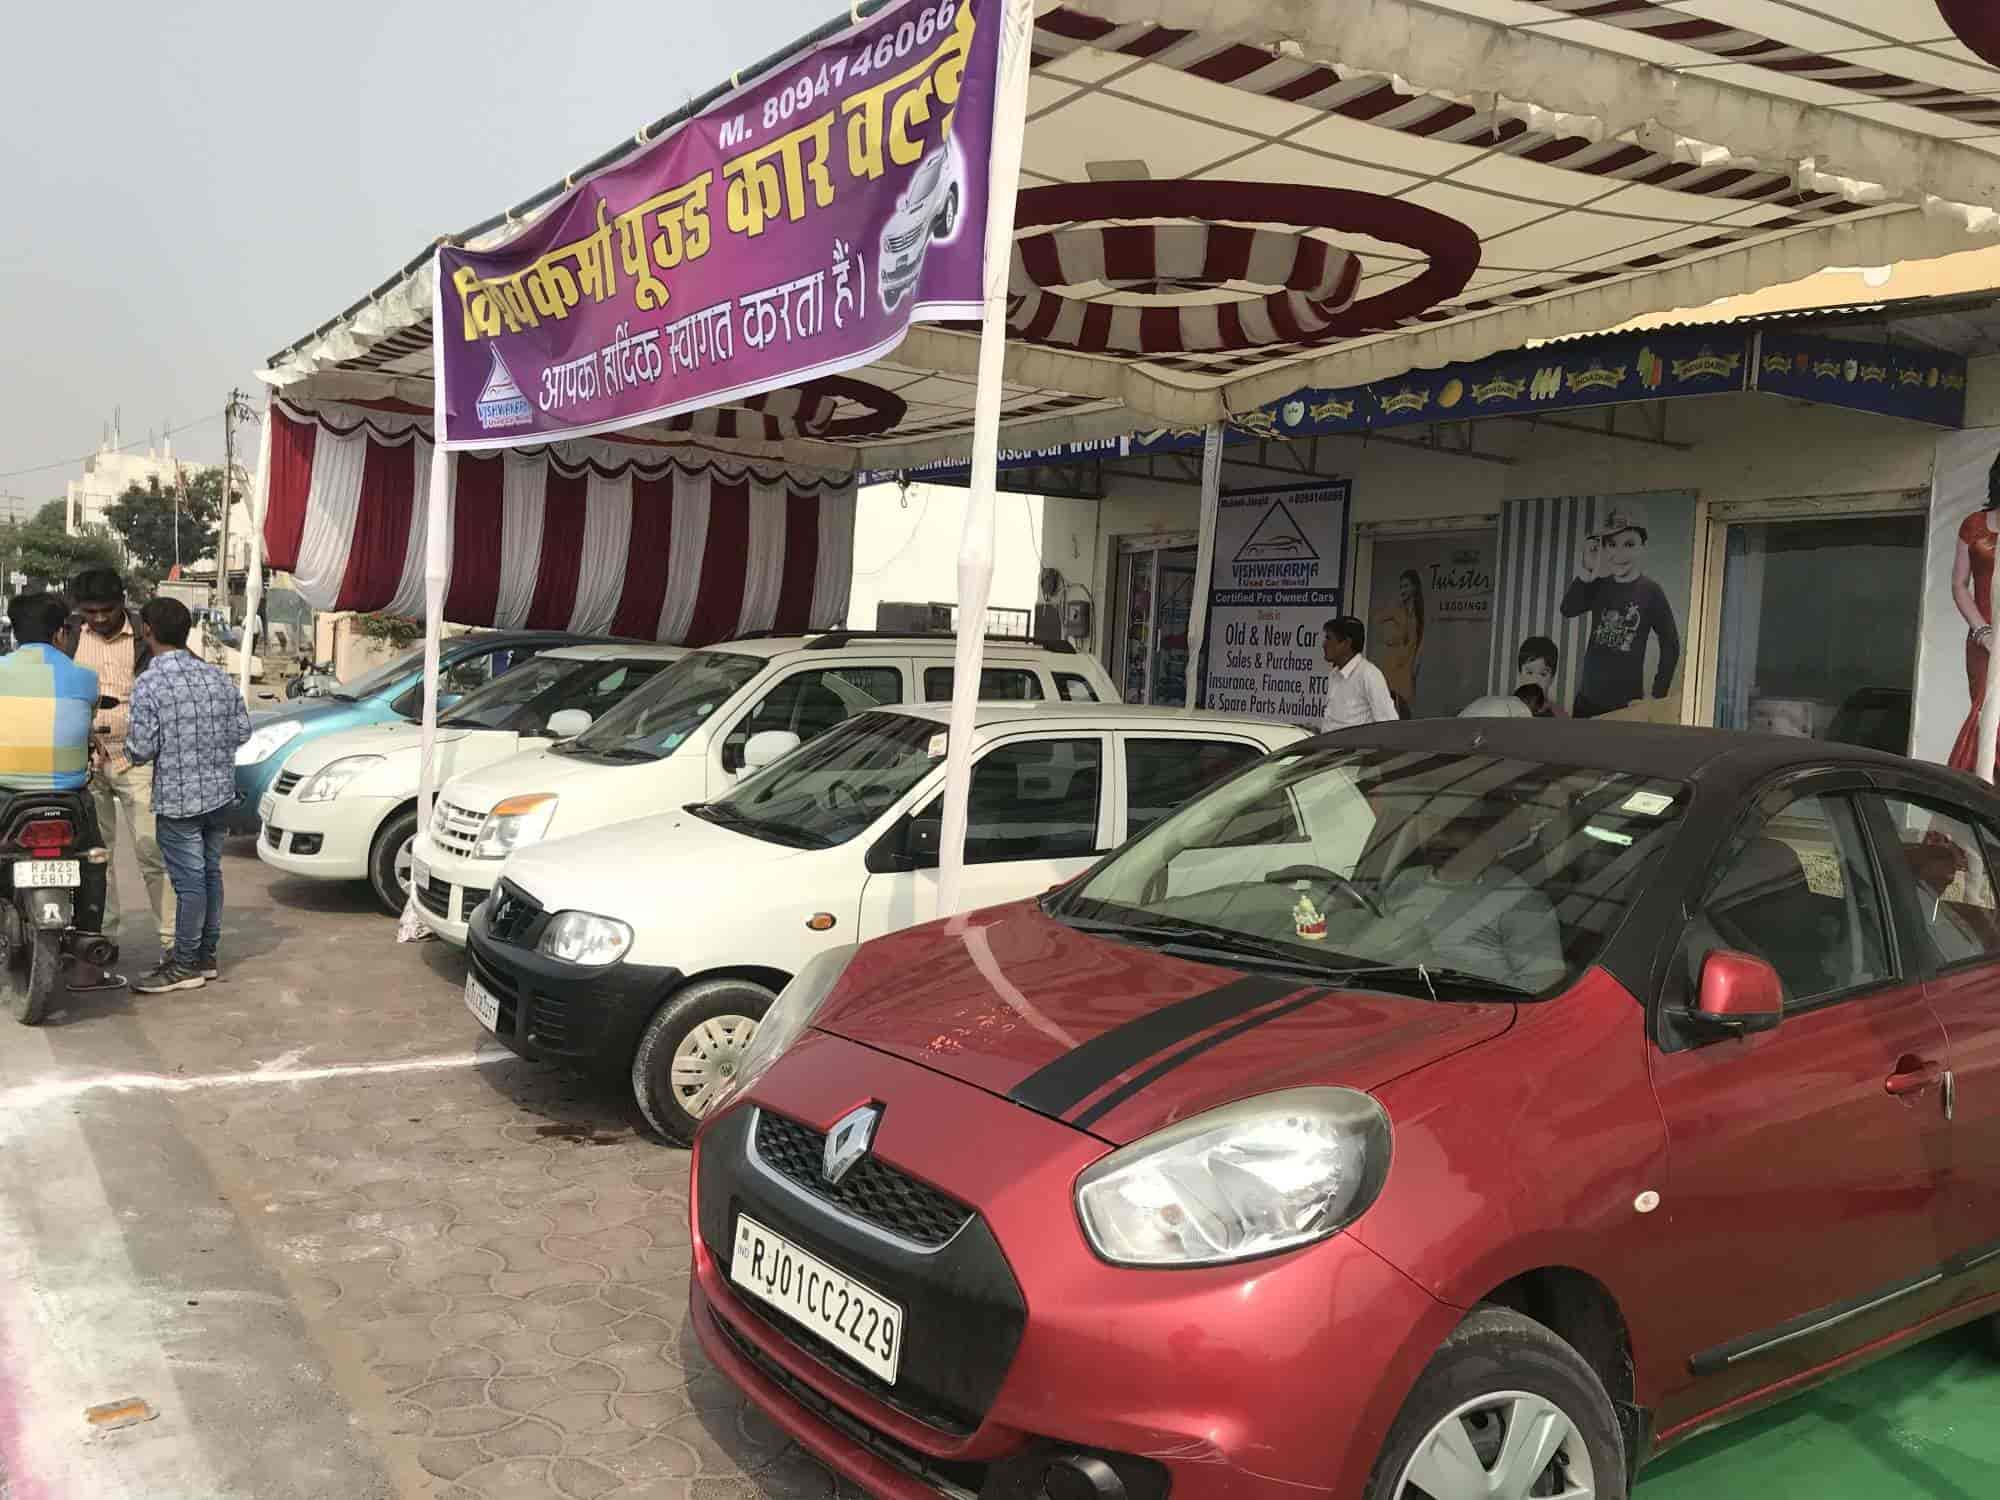 Vishwakarma Used Car World - Second Hand Car Dealers in Ajmer - Justdial